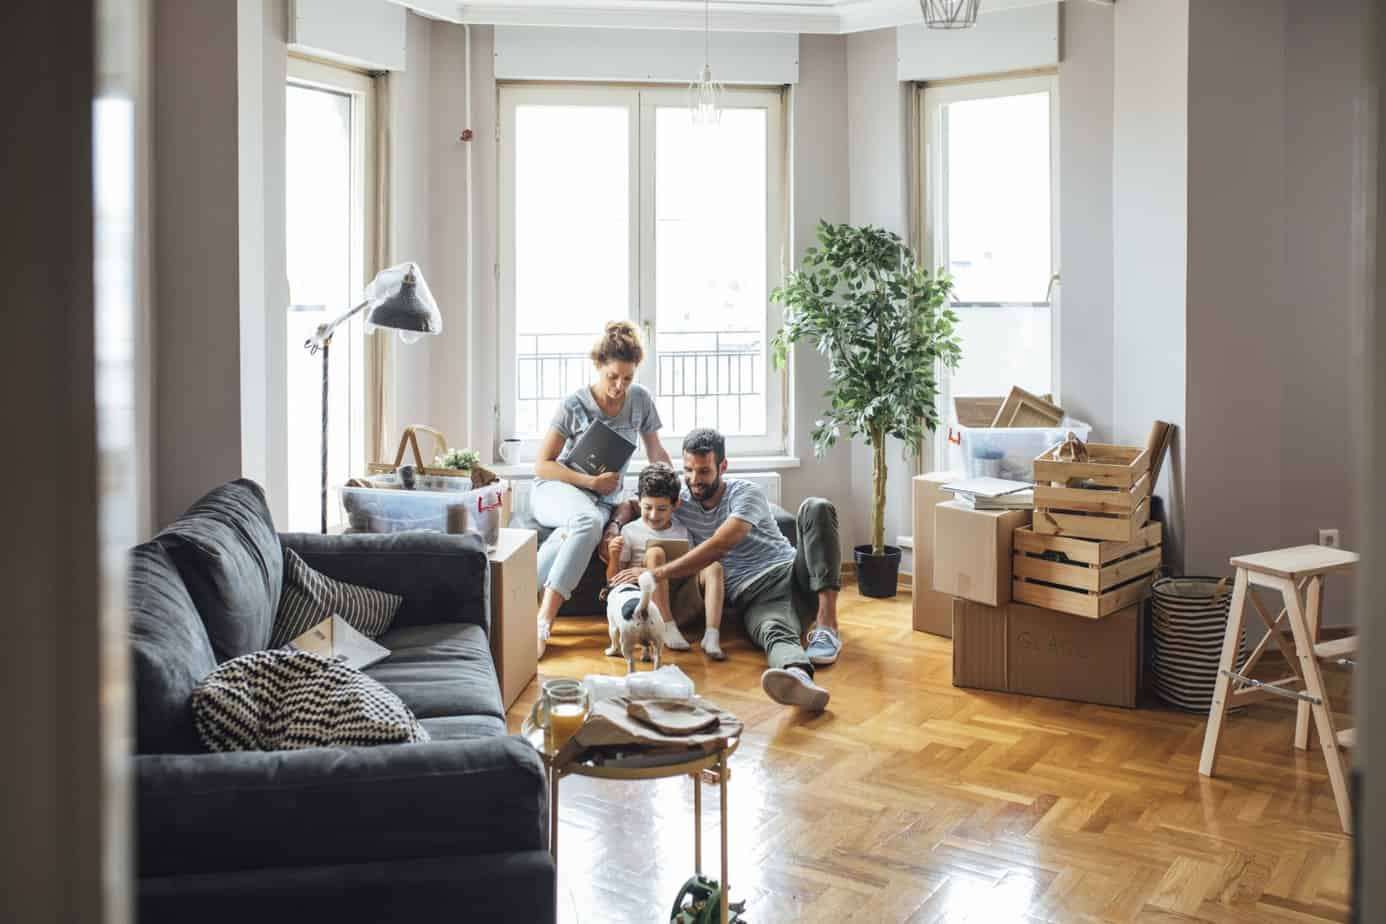 New Home Move? Don't Overlook These 7 Things